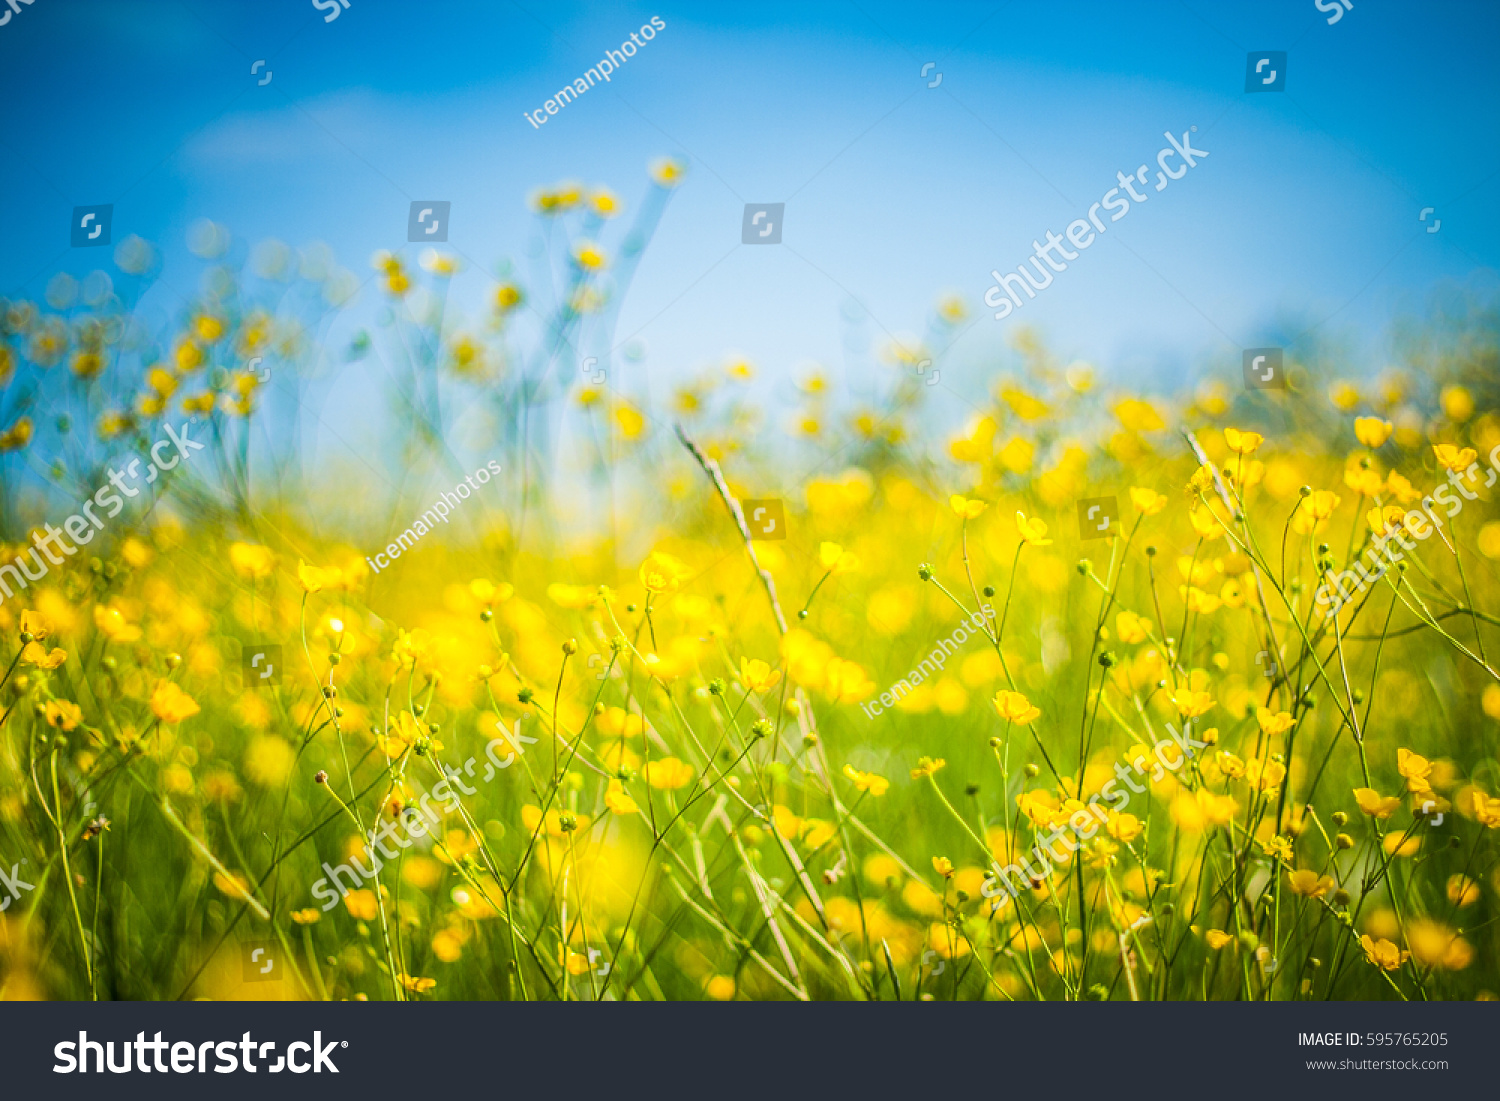 Close Nature Landscape Inspirational Mood Flowering Stock Photo